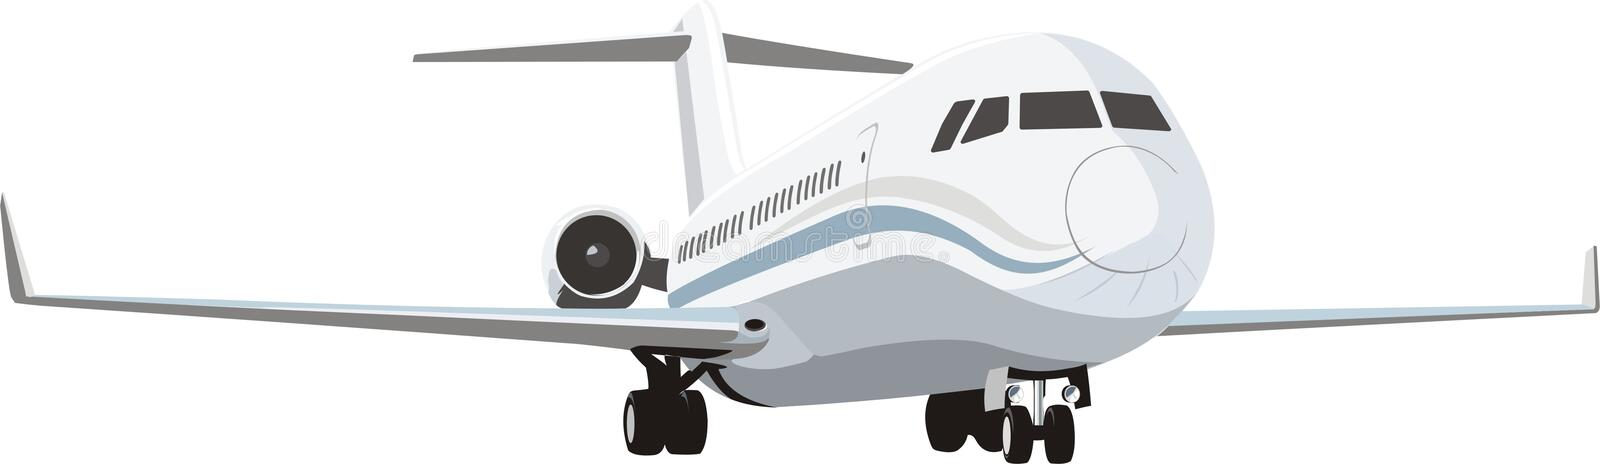 Download Passenger plane stock vector. Image of airplane, fuselage - 13058010